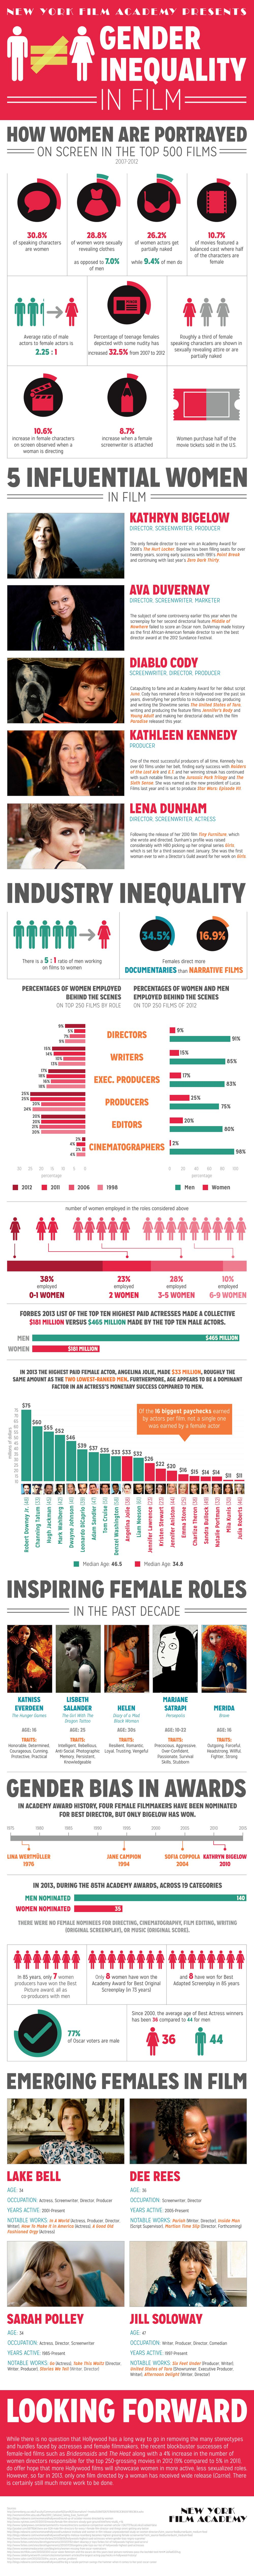 Gender Inequality In Film An Infographic Gender Inequality Inequality Gender